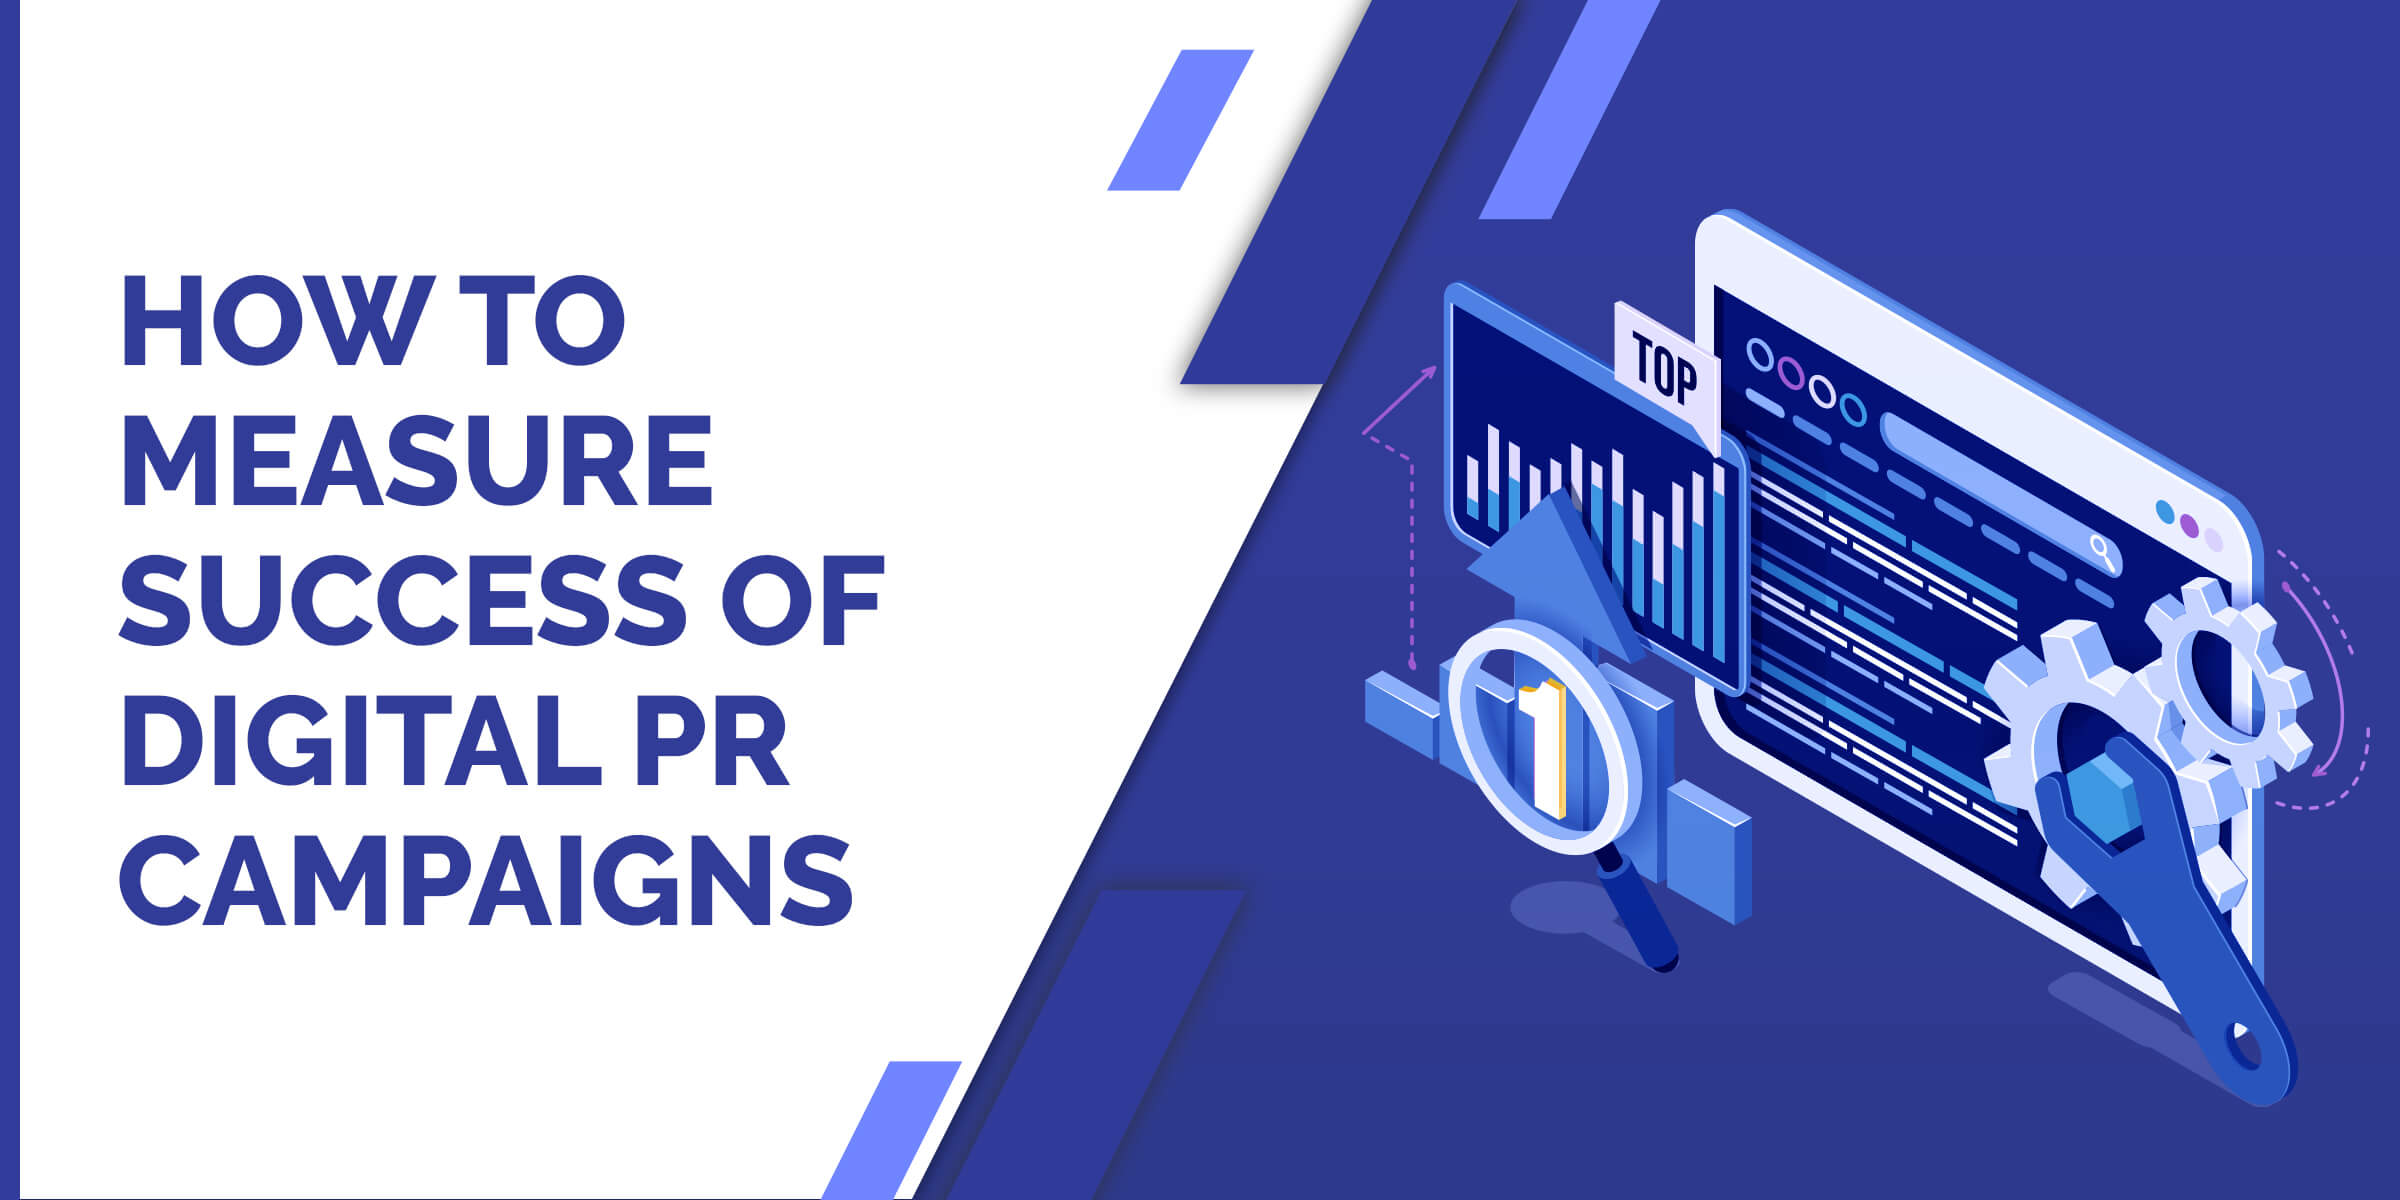 How to Measure the Success of Digital PR Campaigns